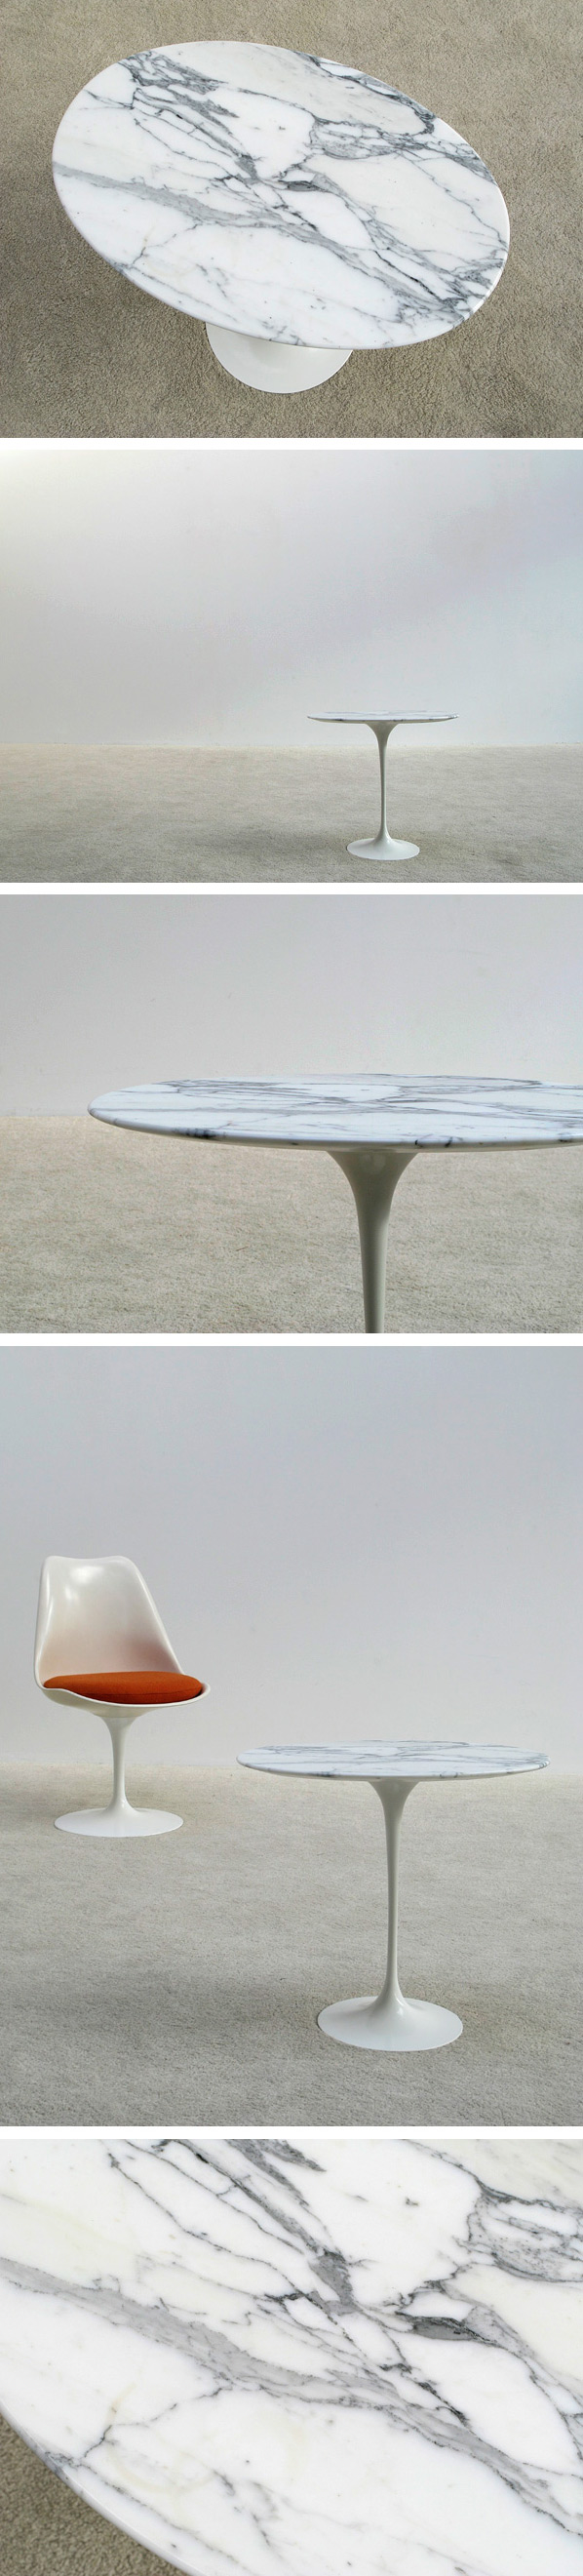 Eero Saarinen marble oval tulip side table Knoll Large